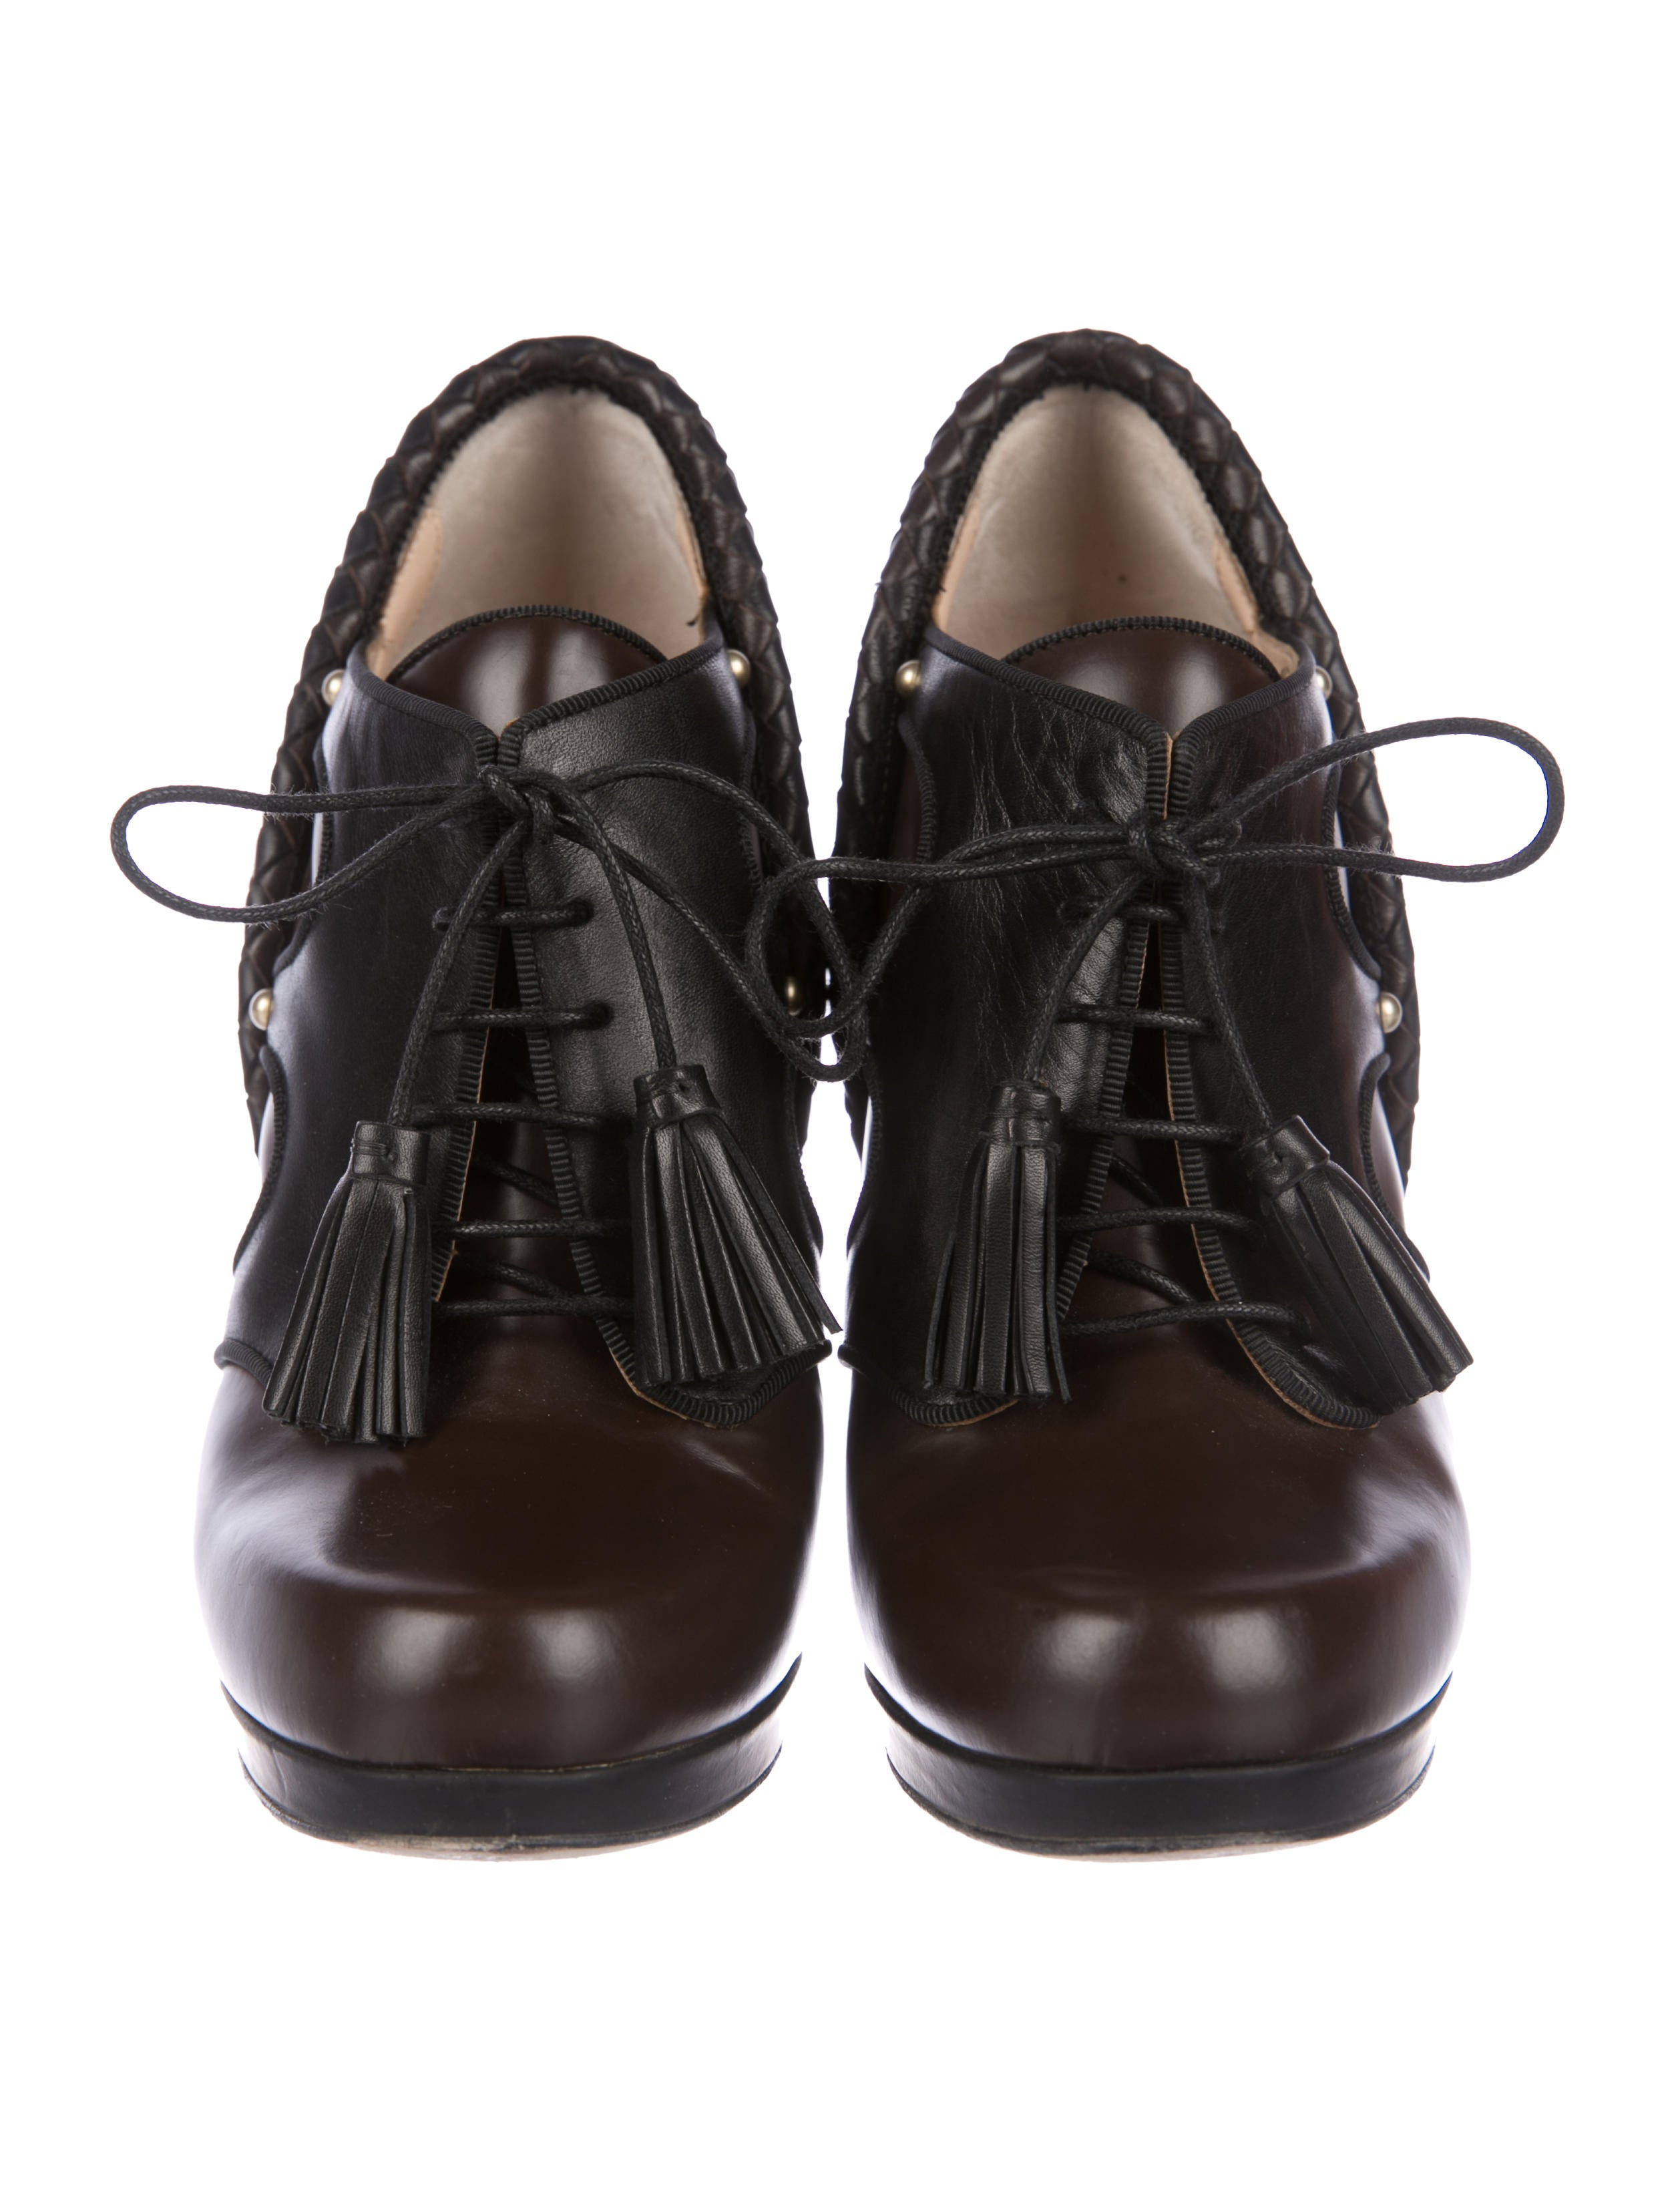 clearance top quality 2015 new cheap price Bally Dedica Leather Booties under 50 dollars outlet cost yZhbdo3